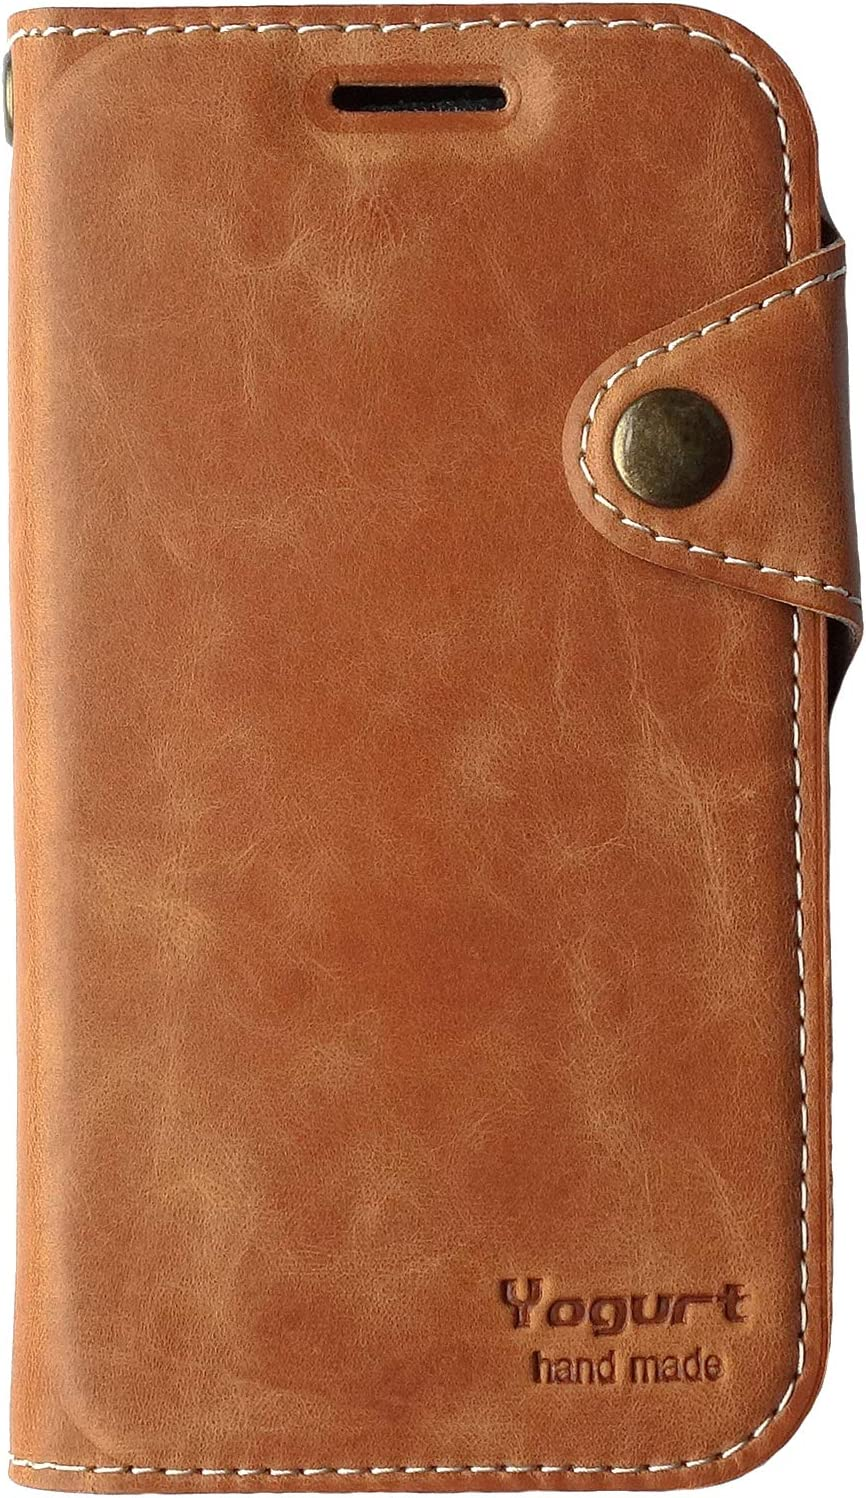 Yogurt for iPhone Xs (5.8 Inch) Case, for iPhone X Case, Handmade Genuine Leather Wallet Cover Tan